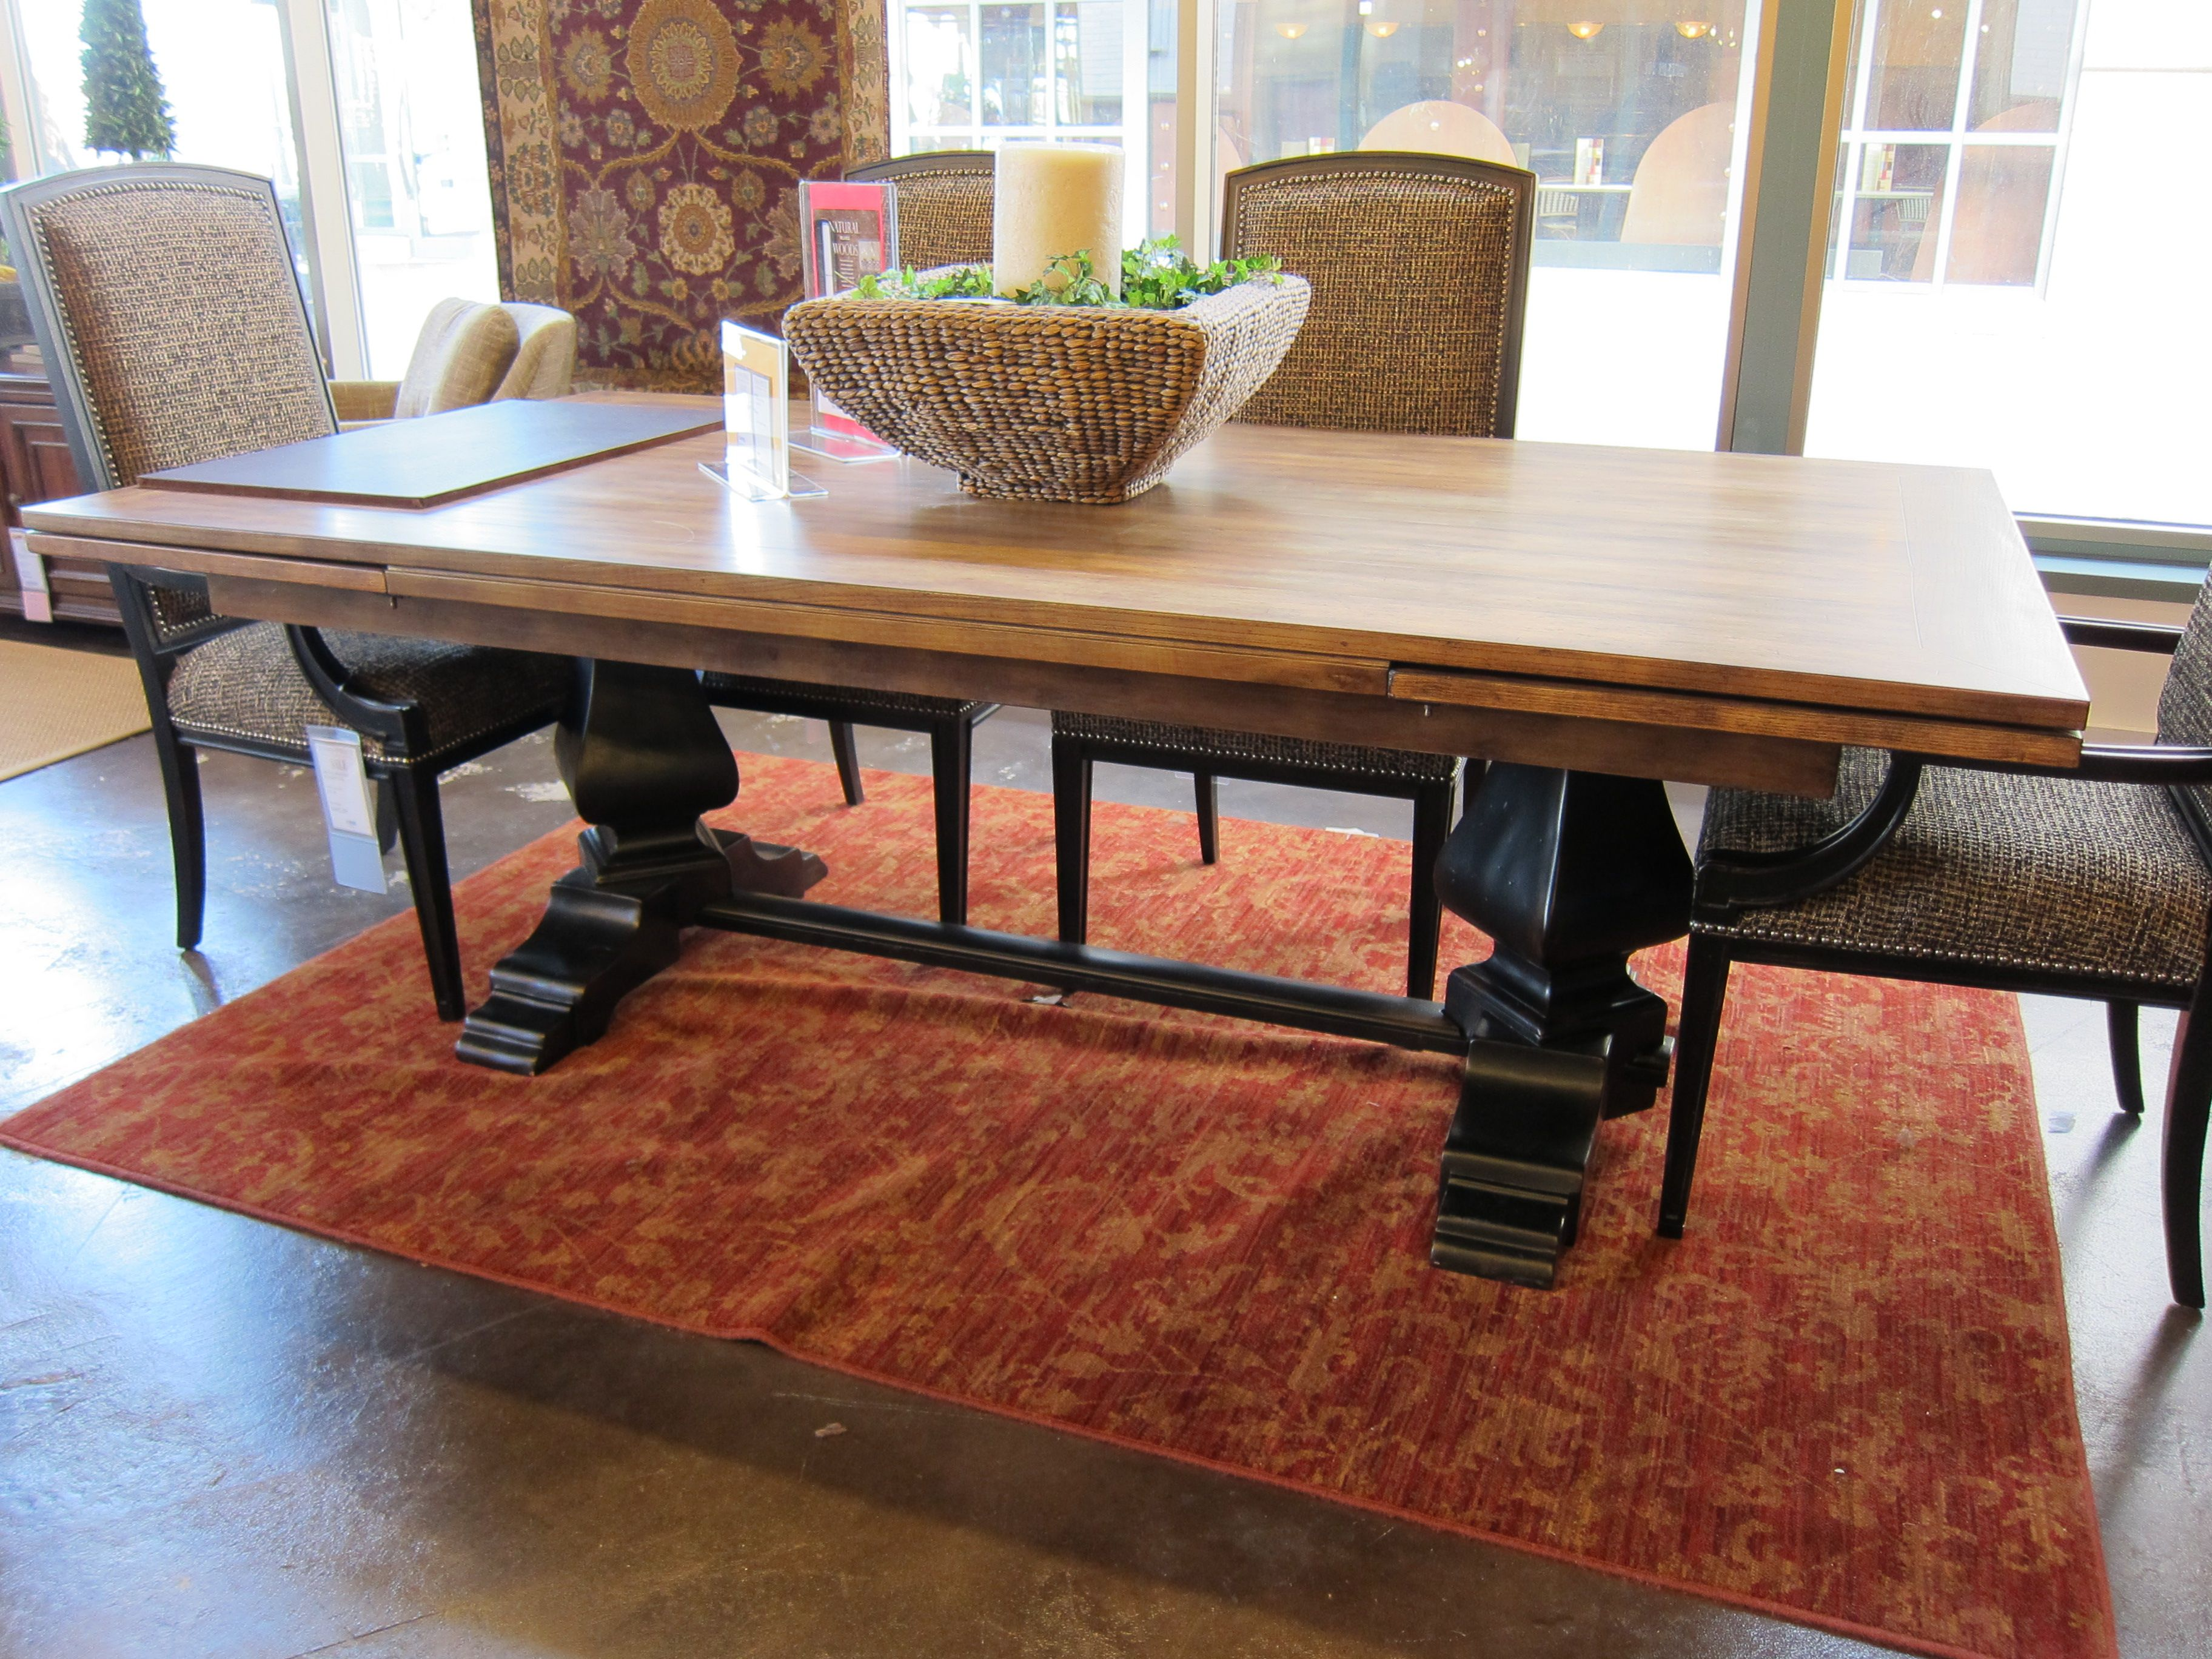 Hooker Sanctuary Refectory table in Ebony and